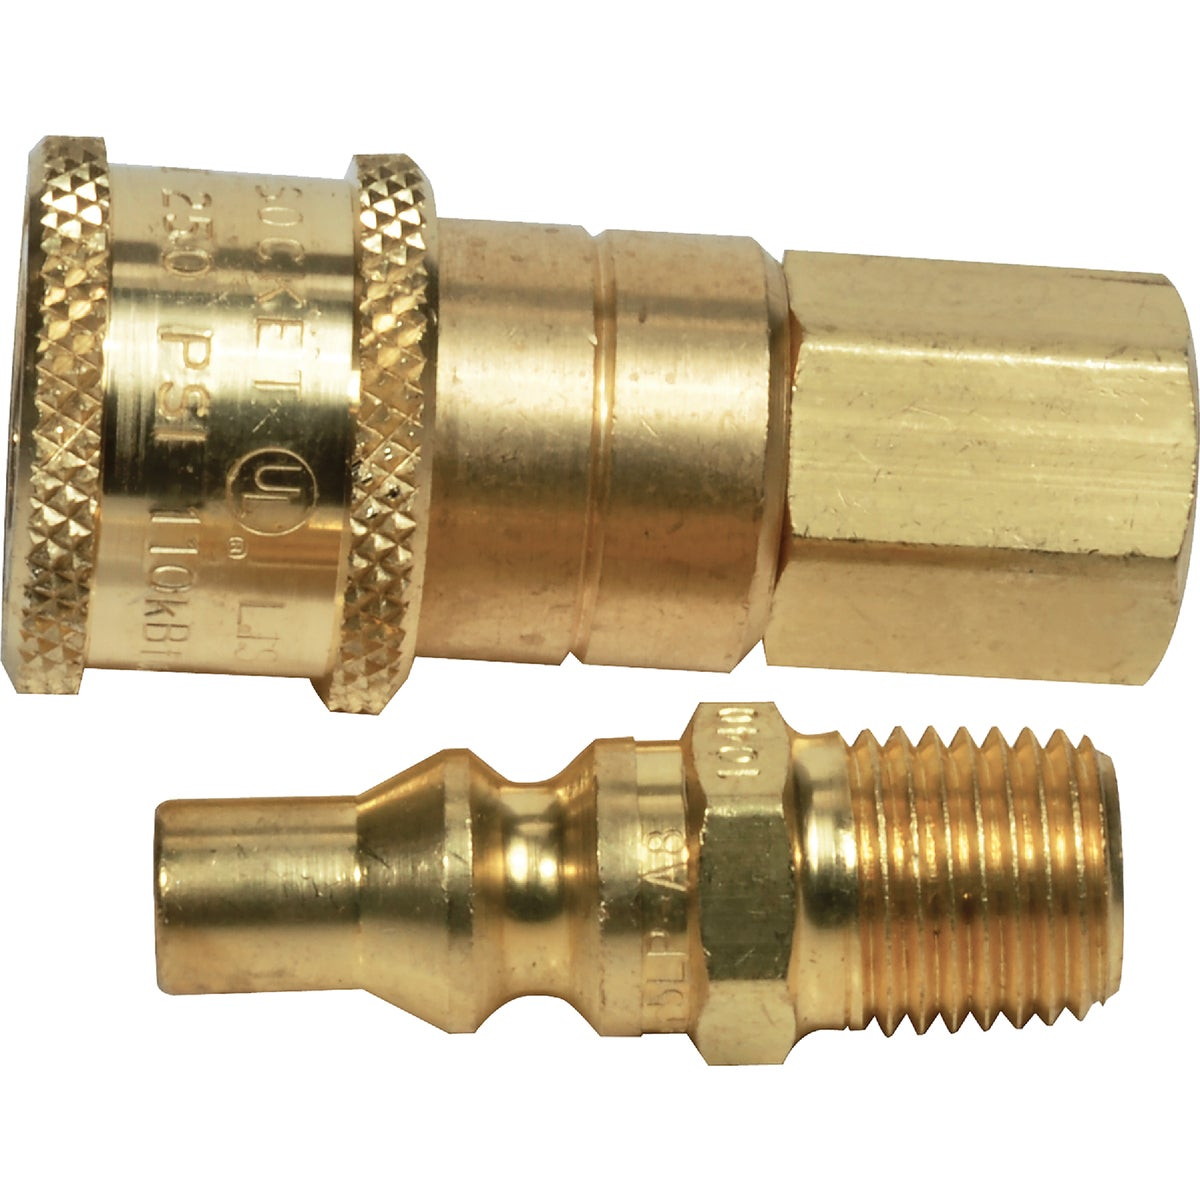 Mr. Heater QUICK GAS CONNECTOR F276190